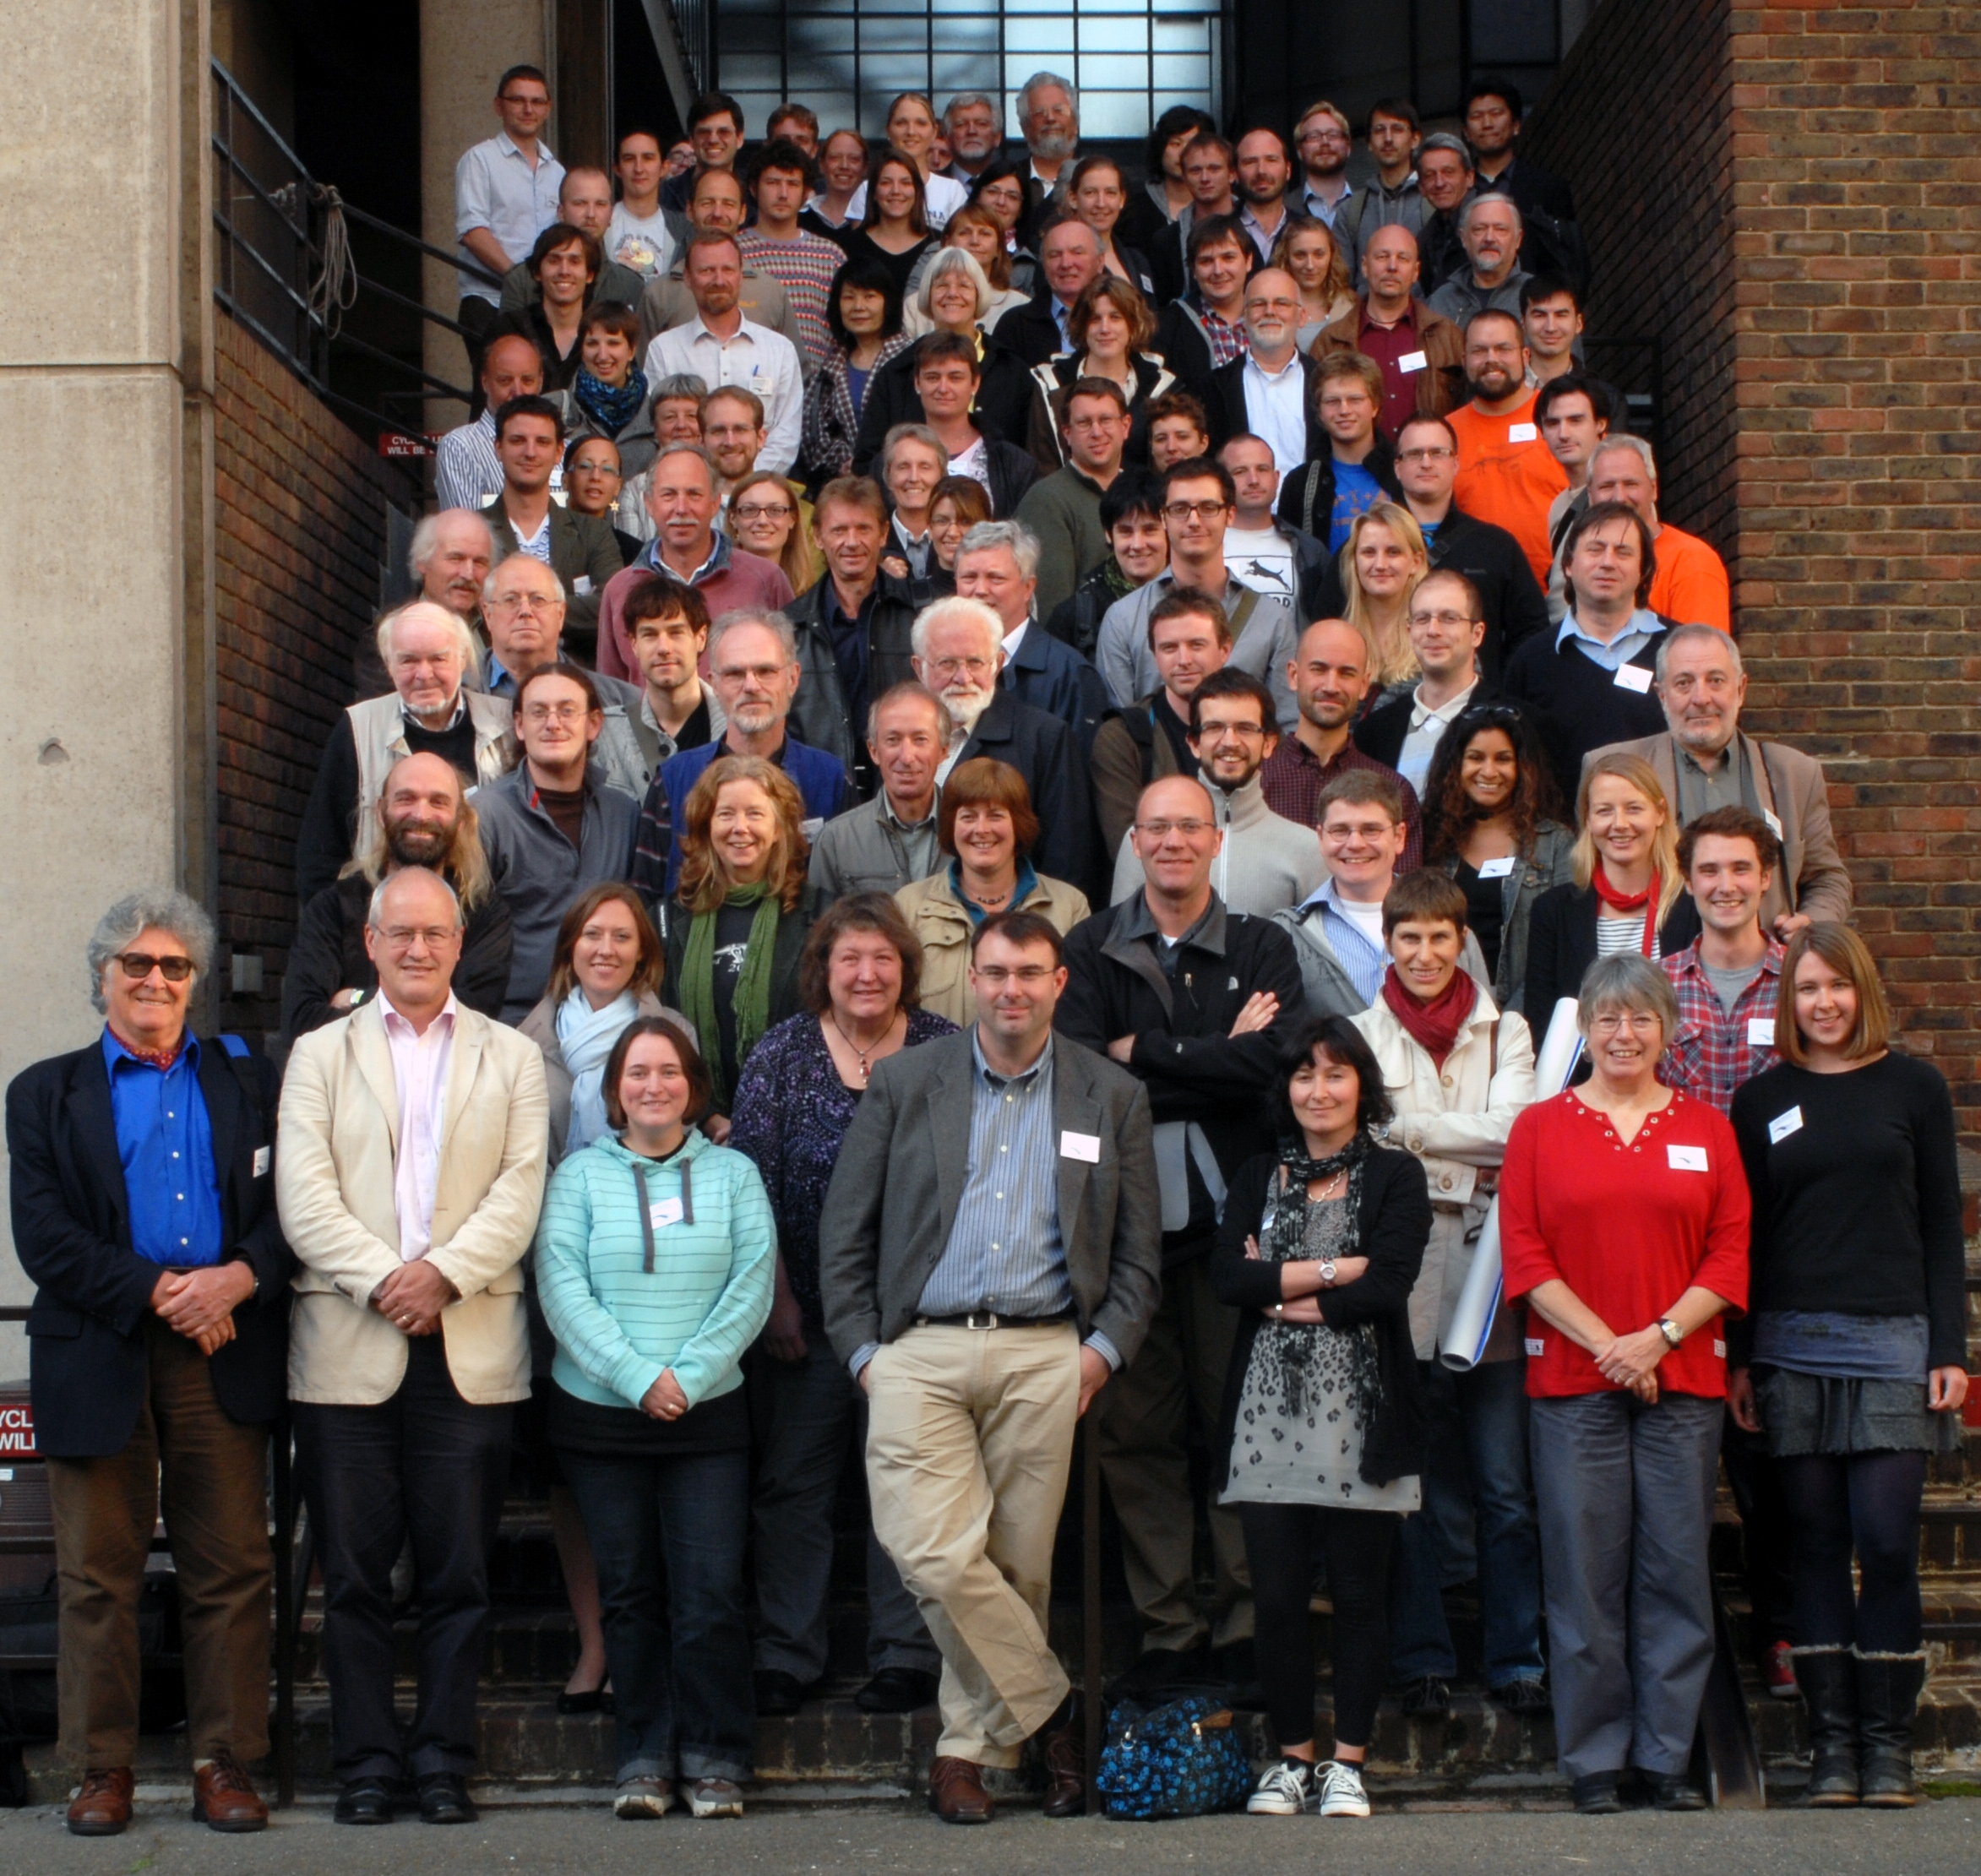 SVPCA Group Group Photo - 2010